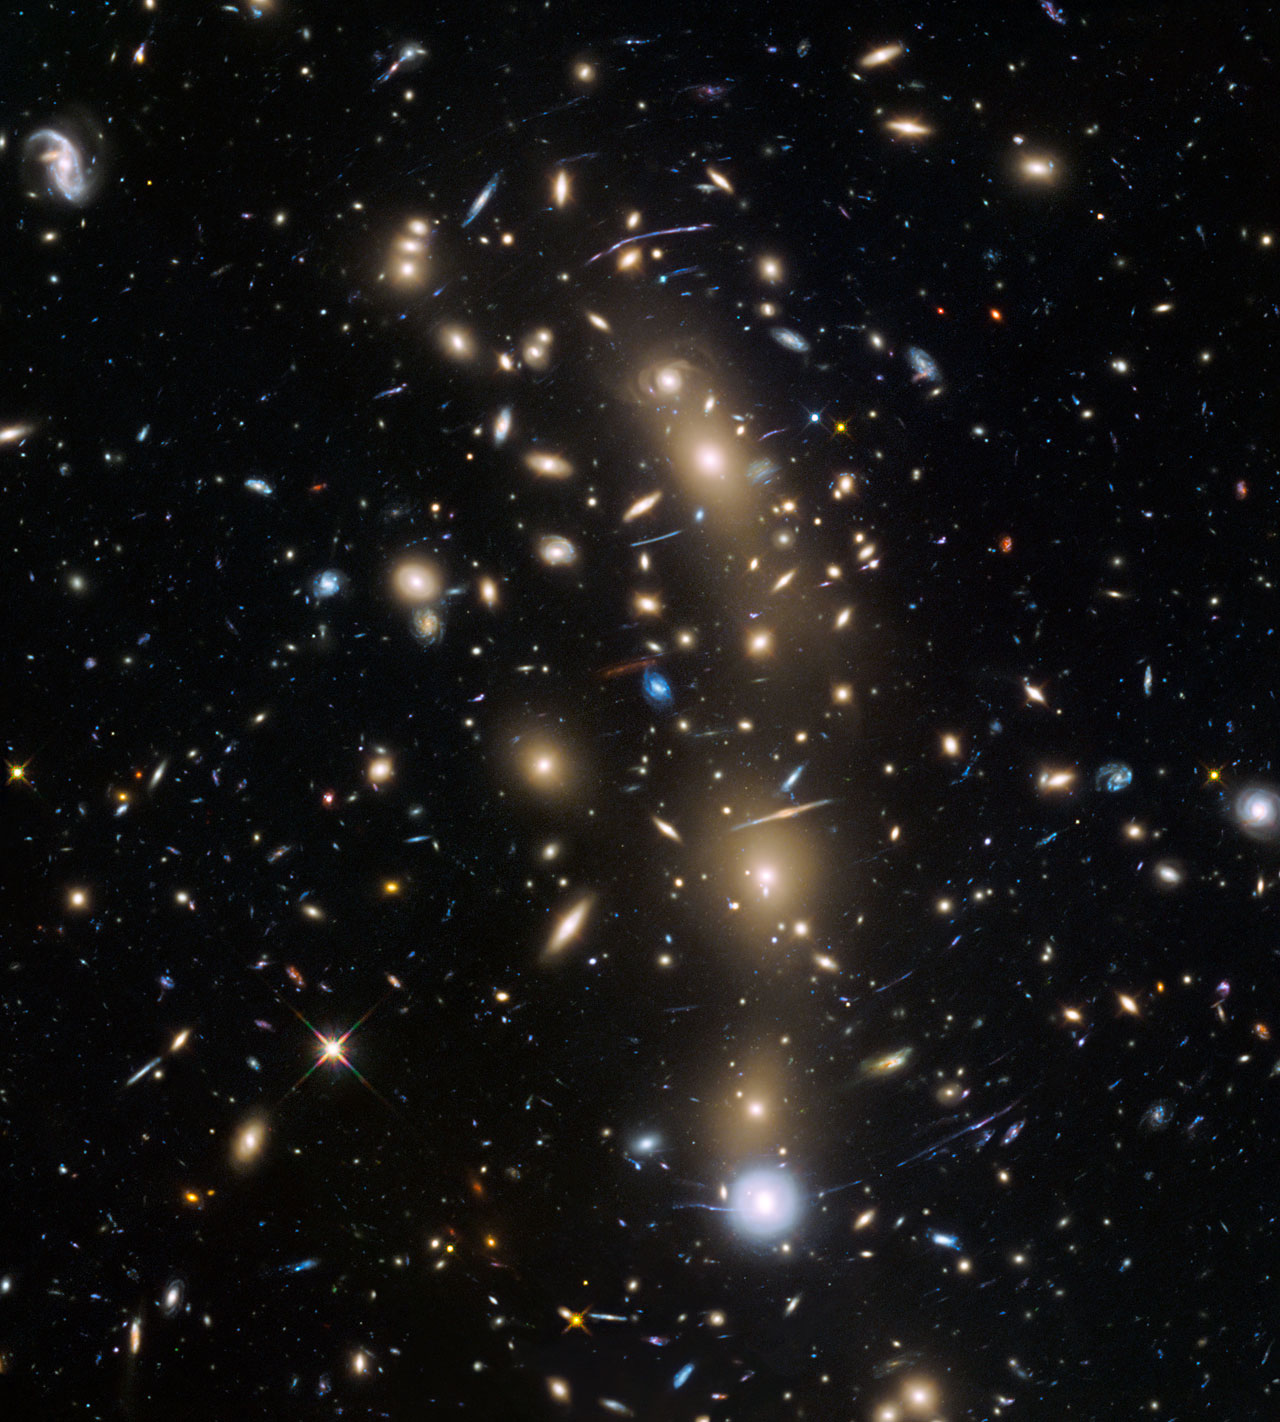 Hubble spies Big Bang frontiers | ESA/Hubble